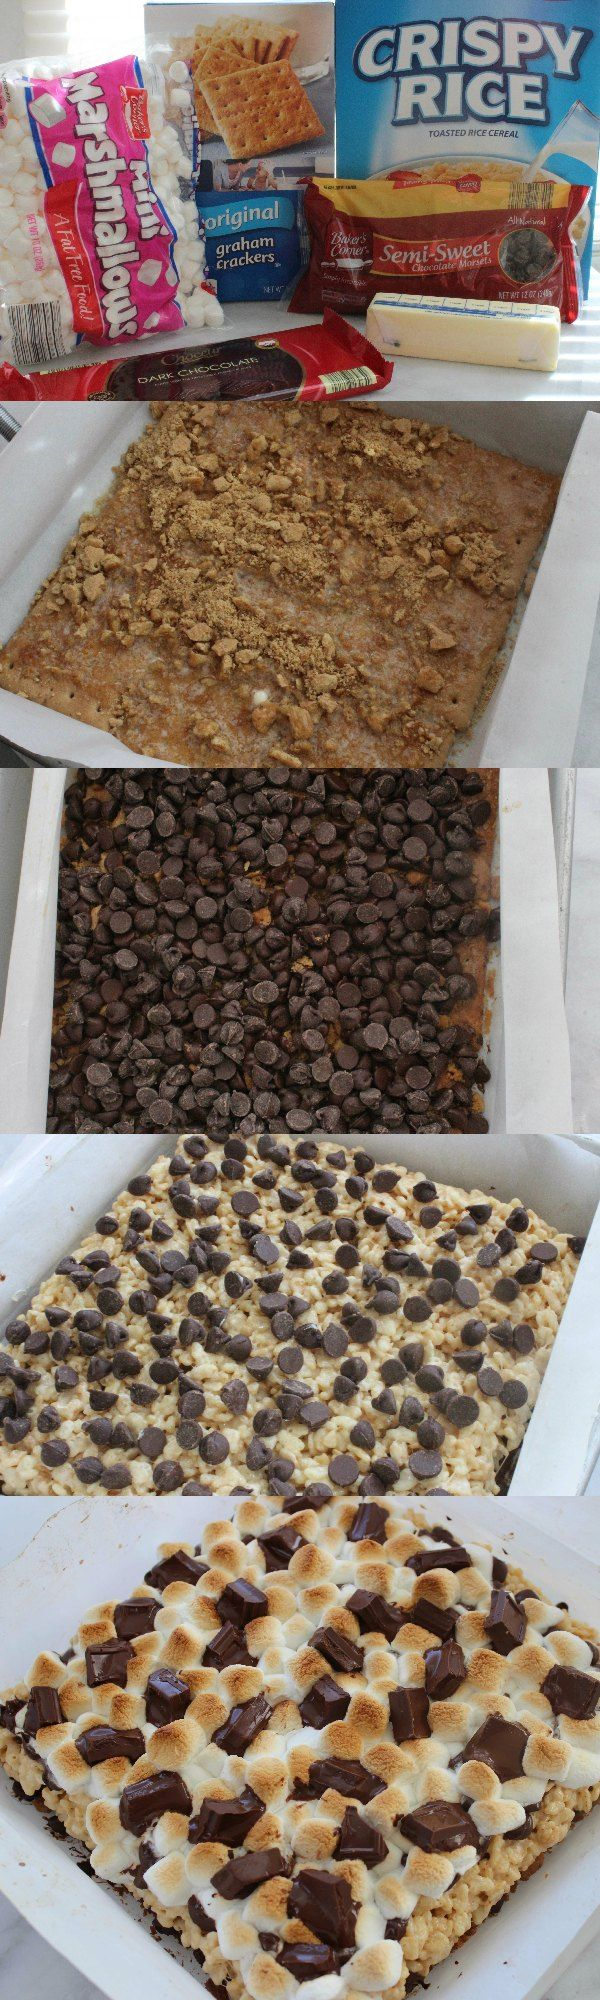 These S'Mores Krispie Treats combines your favorite Rice Krispie Treats cereal with the taste of your favorite classic S'mores recipes for a yummy summertime treat.